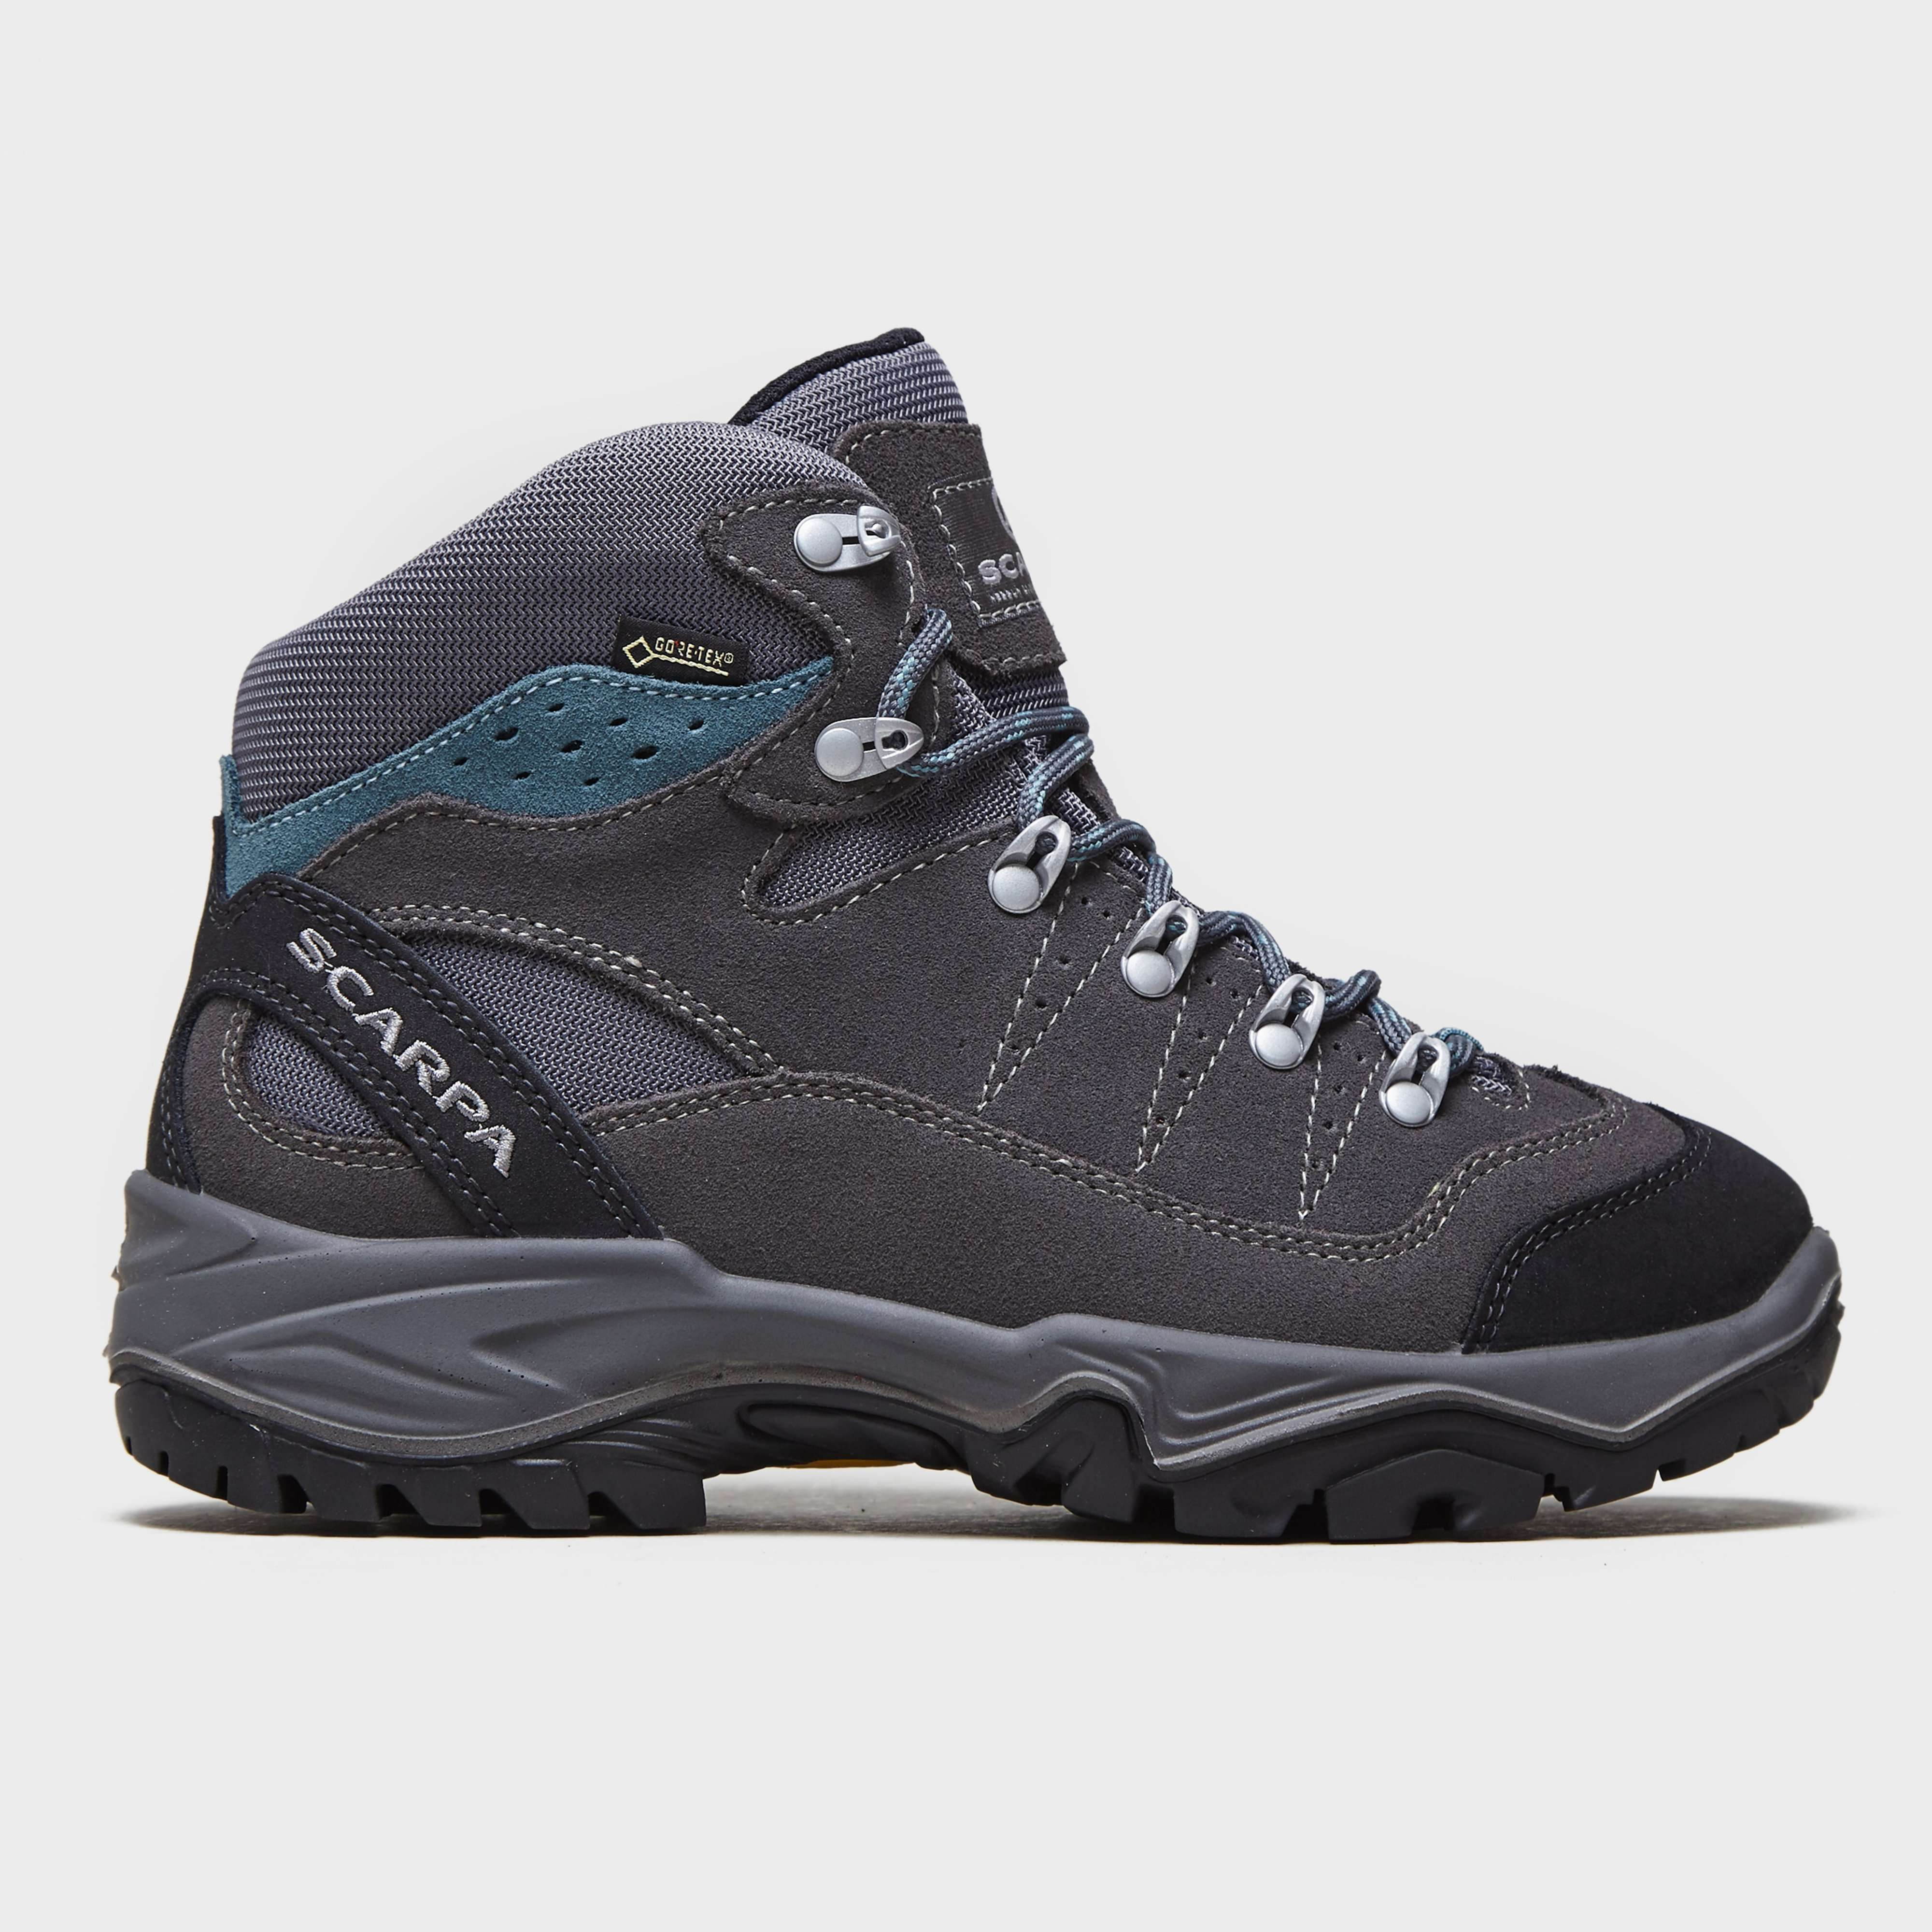 SCARPA Women's Mistral GORE-TEX® Boots